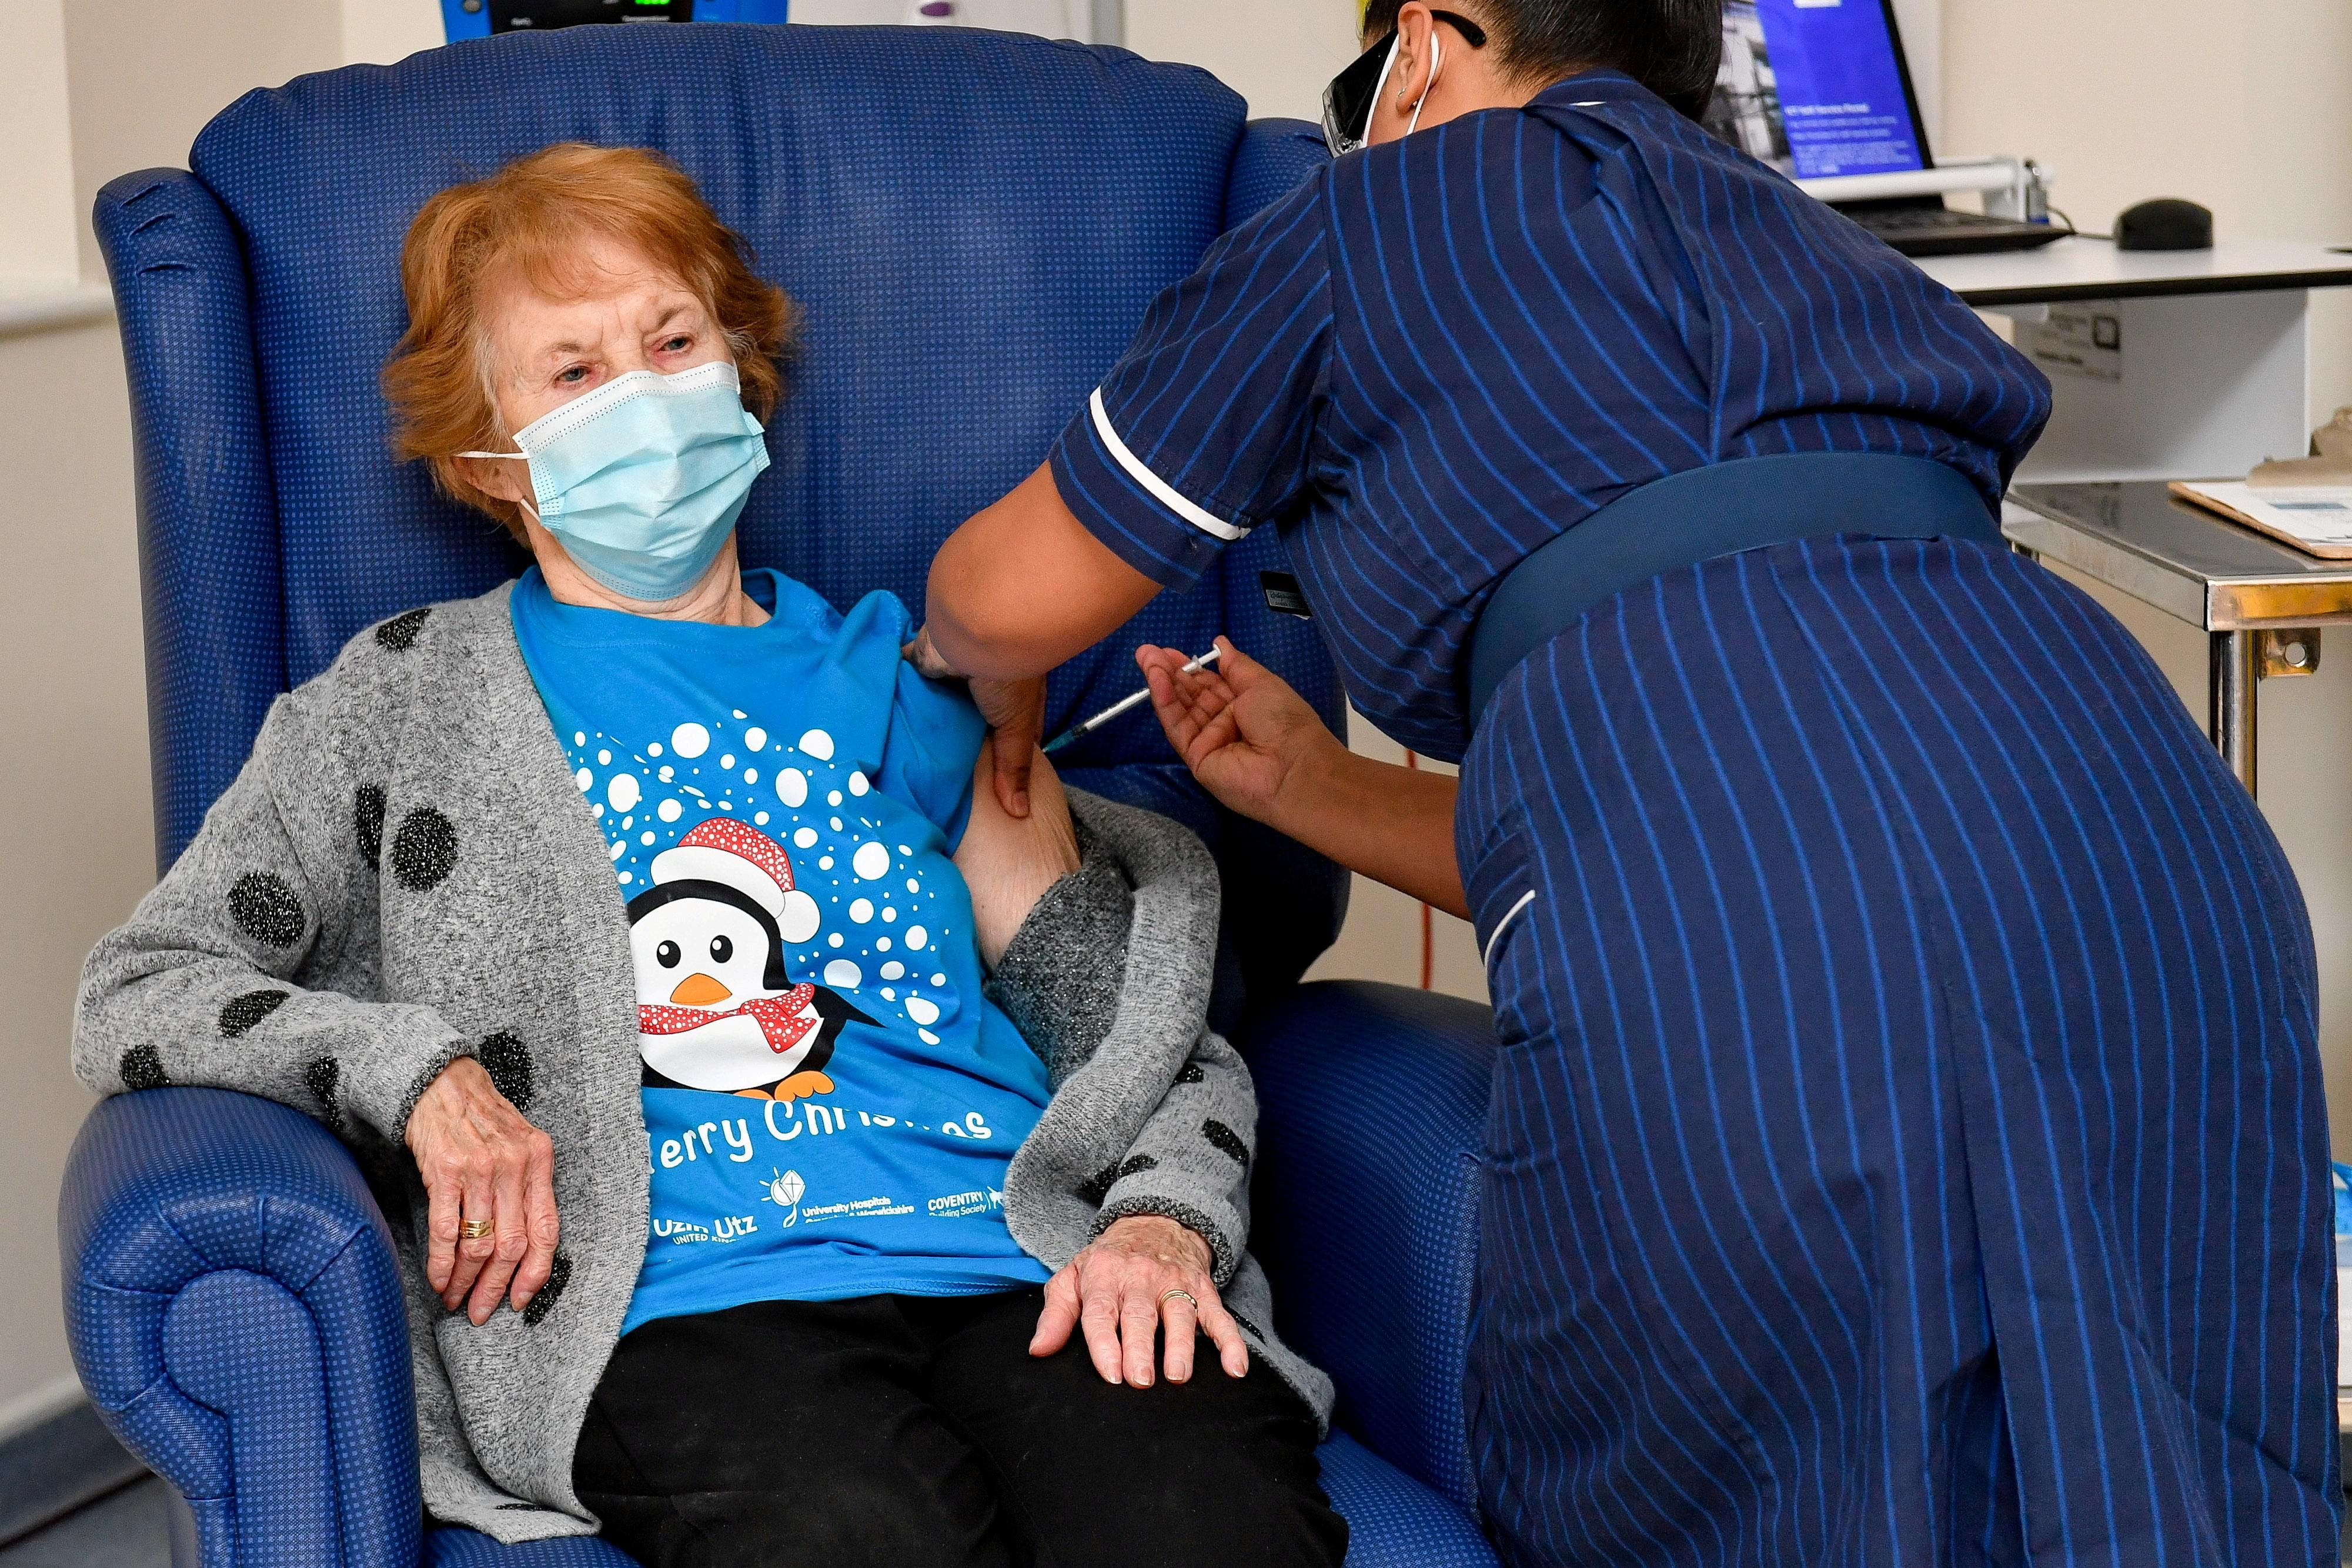 Margaret Keenan, 90, is the first patient in Britain to receive the Pfizer/BioNtech COVID-19 vaccine at University Hospital, administered by nurse May Parsons, at the start of the largest ever immunization program in British history, in Coventry.